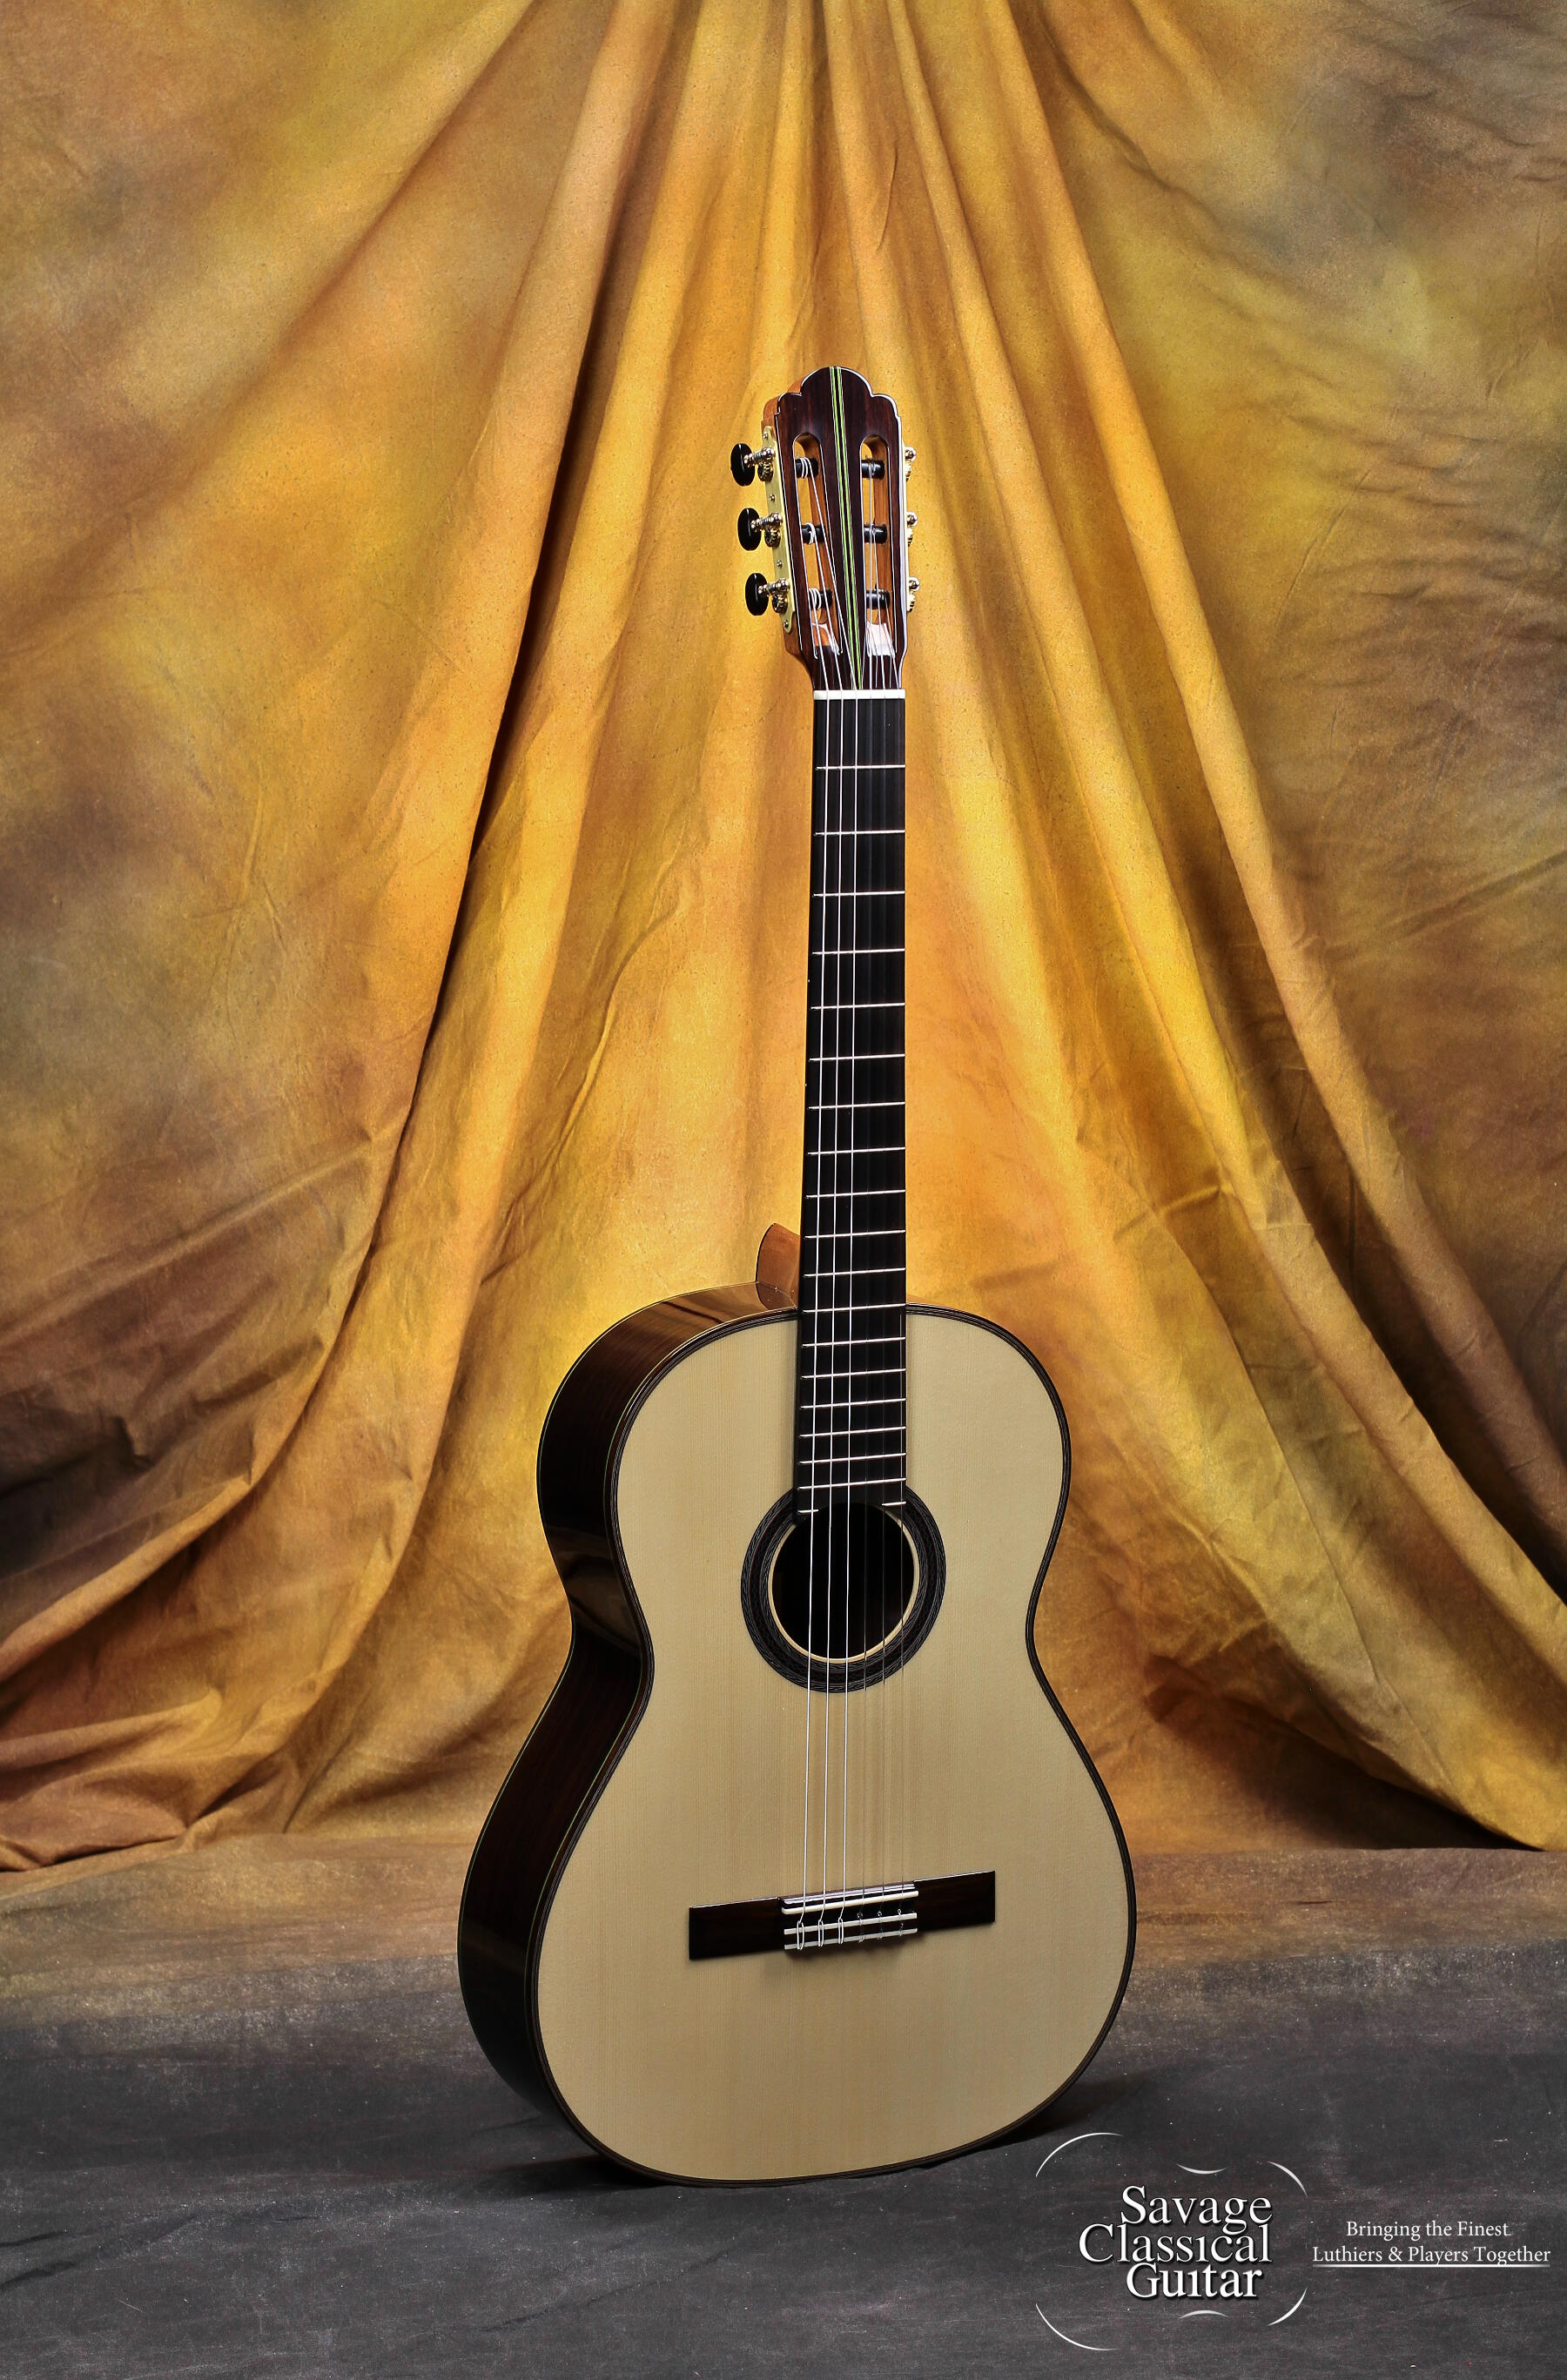 Cordoba Master Series Classical Guitar Hauser Savage Classical Guitar #B88013